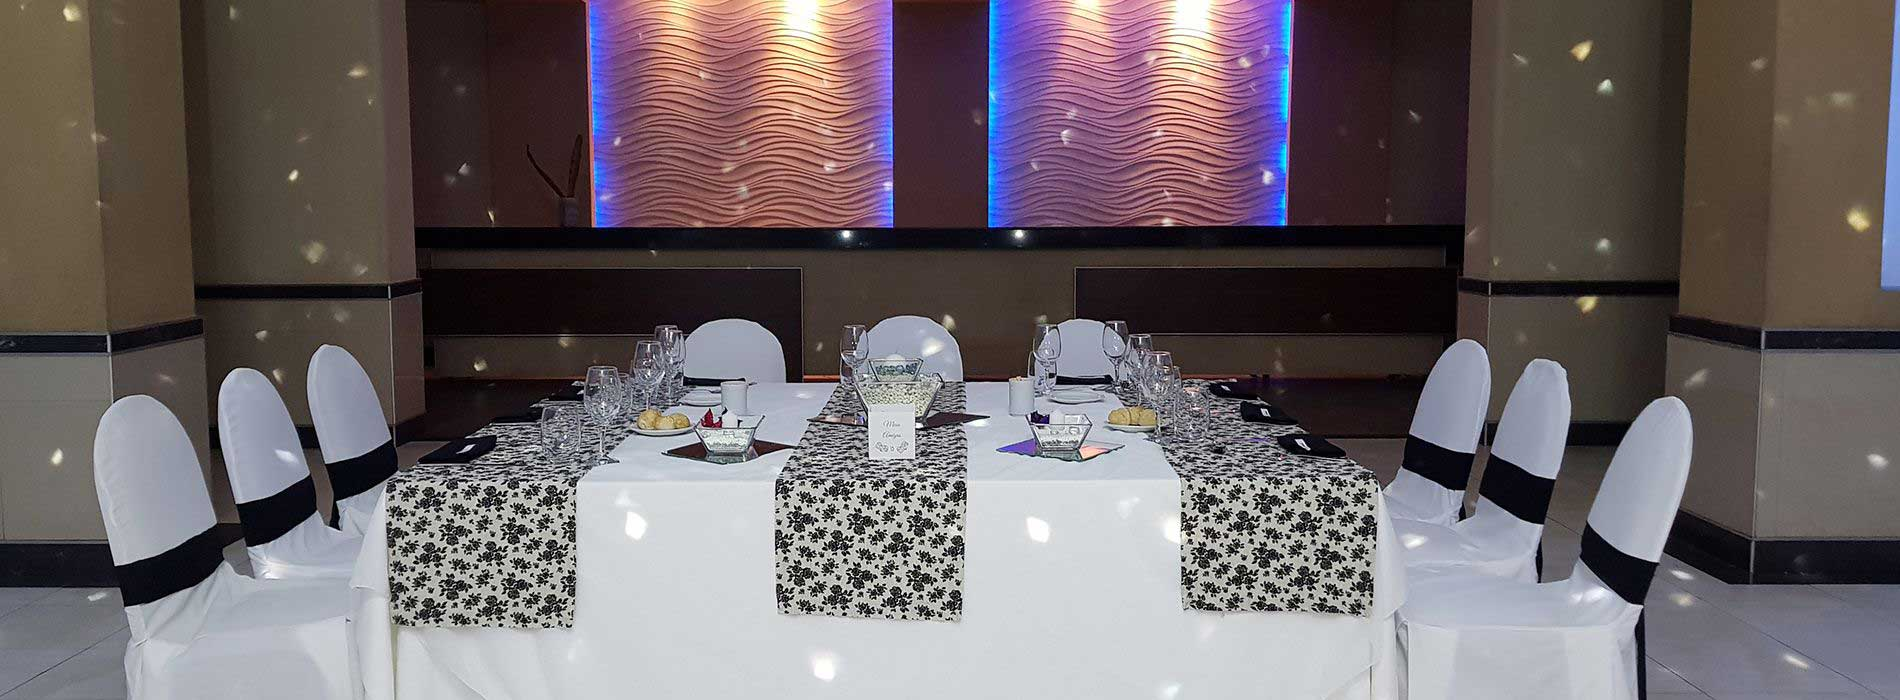 palatium-salon-de-eventos72